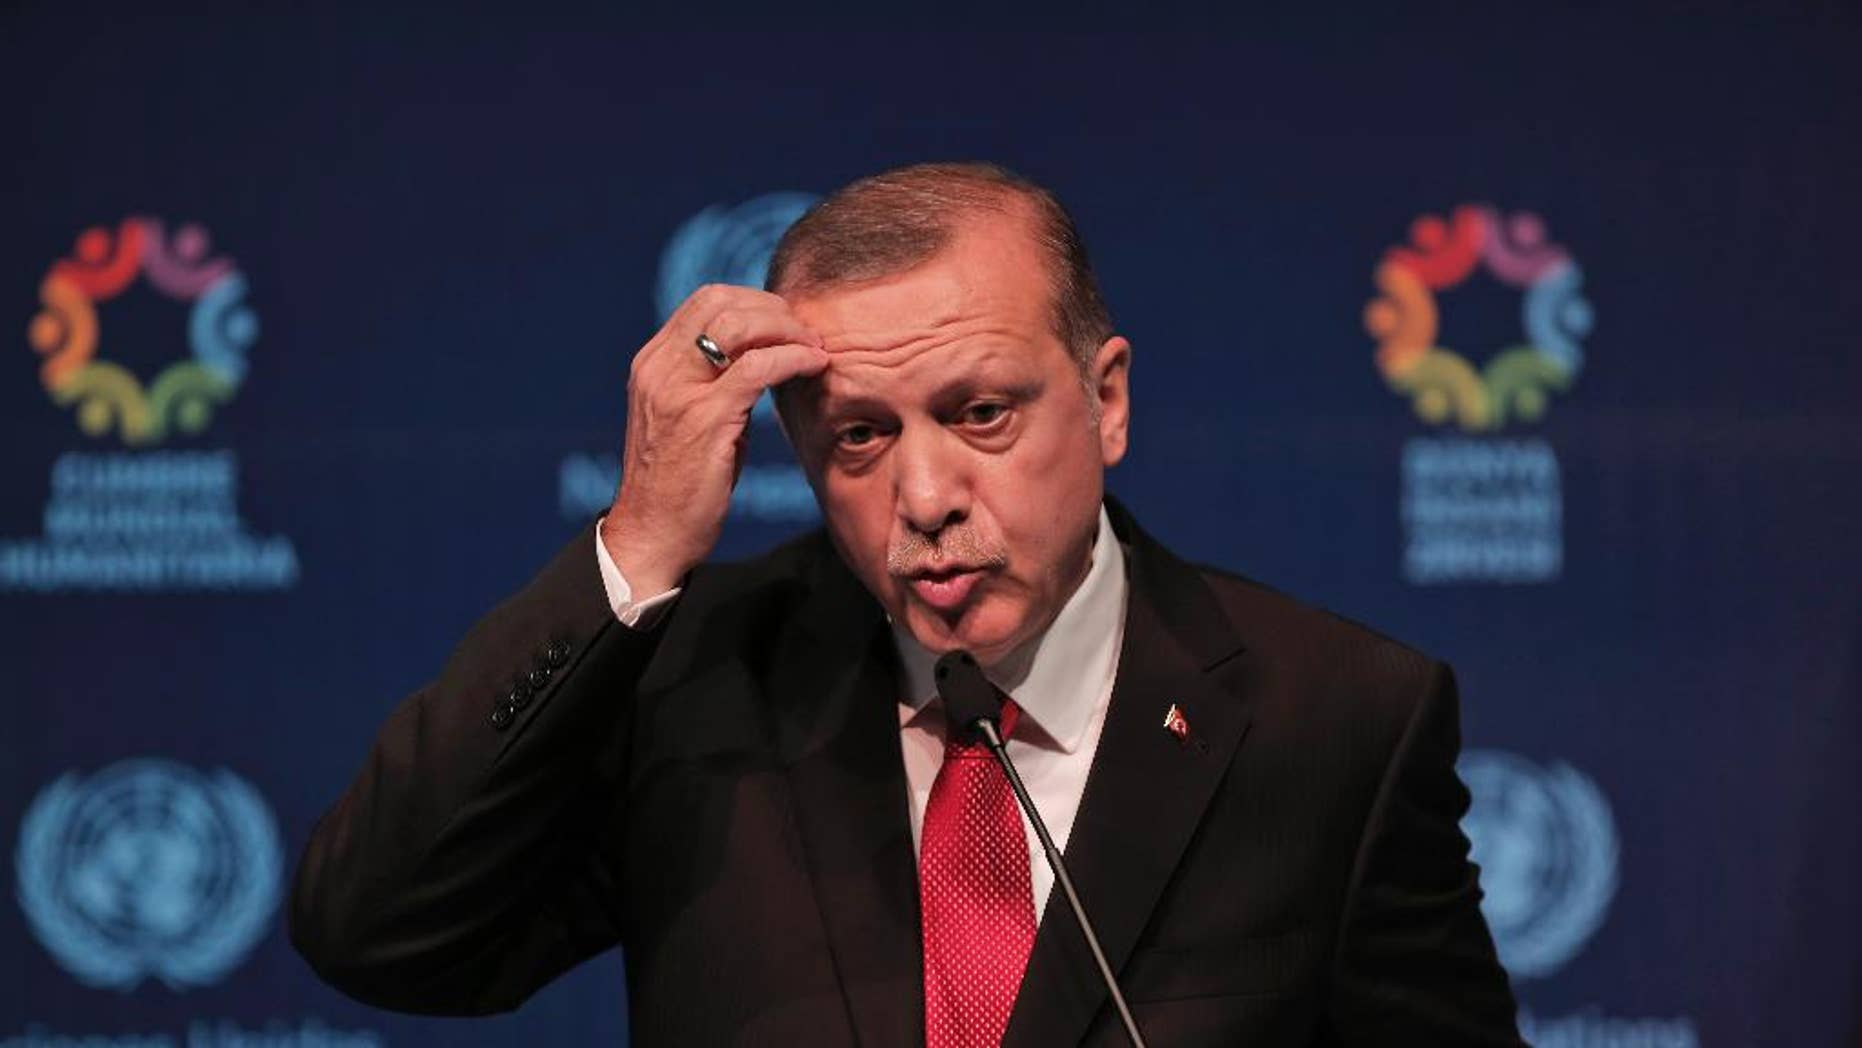 Turkish President Recep Tayyip Erdogan talks during a joint news conference with United Nations Secretary General Ban Ki-moon, at the the World Humanitarian Summit in Istanbul, Tuesday, May 24, 2016. World leaders and representatives of humanitarian organisations from across the globe gathered in Istanbul on May 23-24, 2016 for the first World Humanitarian Summit, focused on how to reform a system many judge broken. (AP Photo/Lefteris Pitarakis)